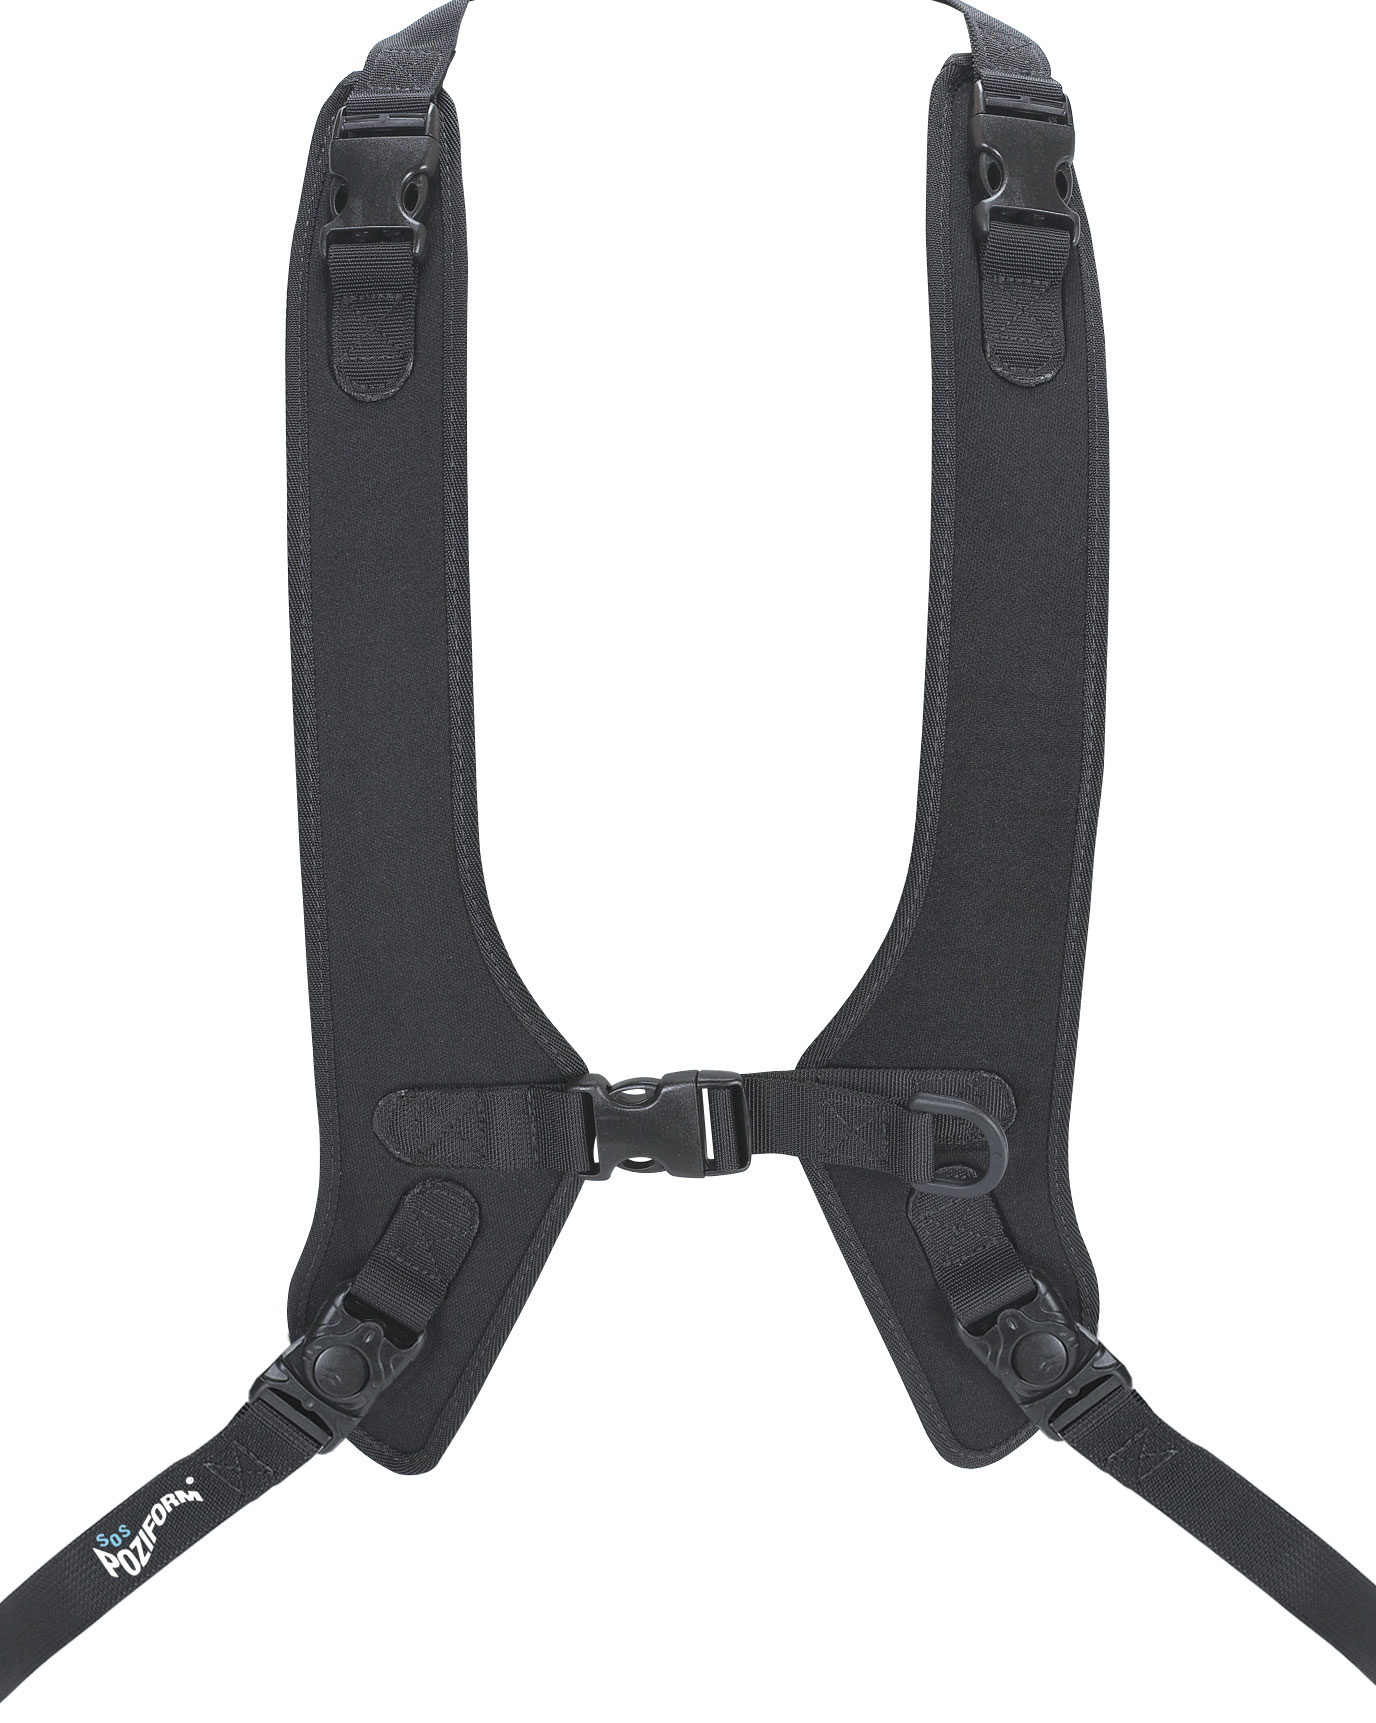 wheelchair harness sling back patio chairs target poziform standard shoulder living made easy